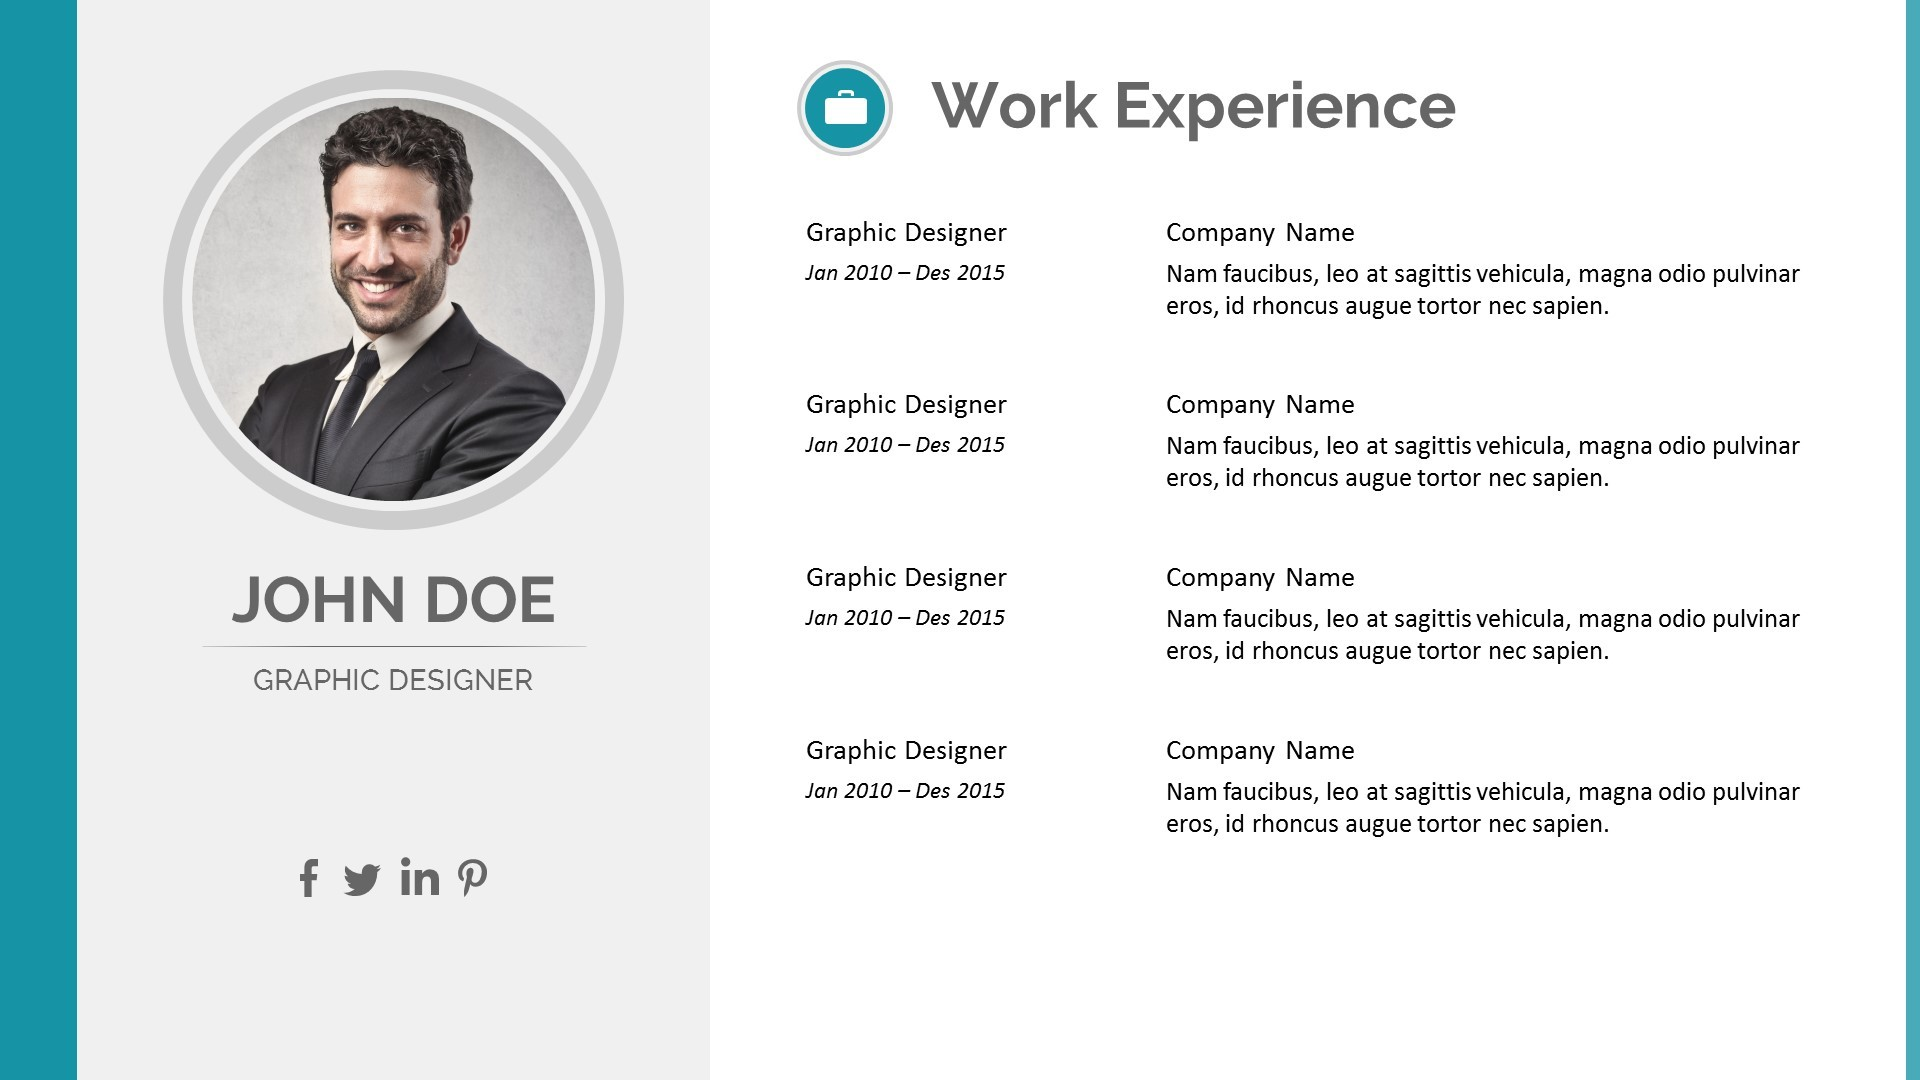 jpg screenshotsresume 5 - Powerpoint Resume Template